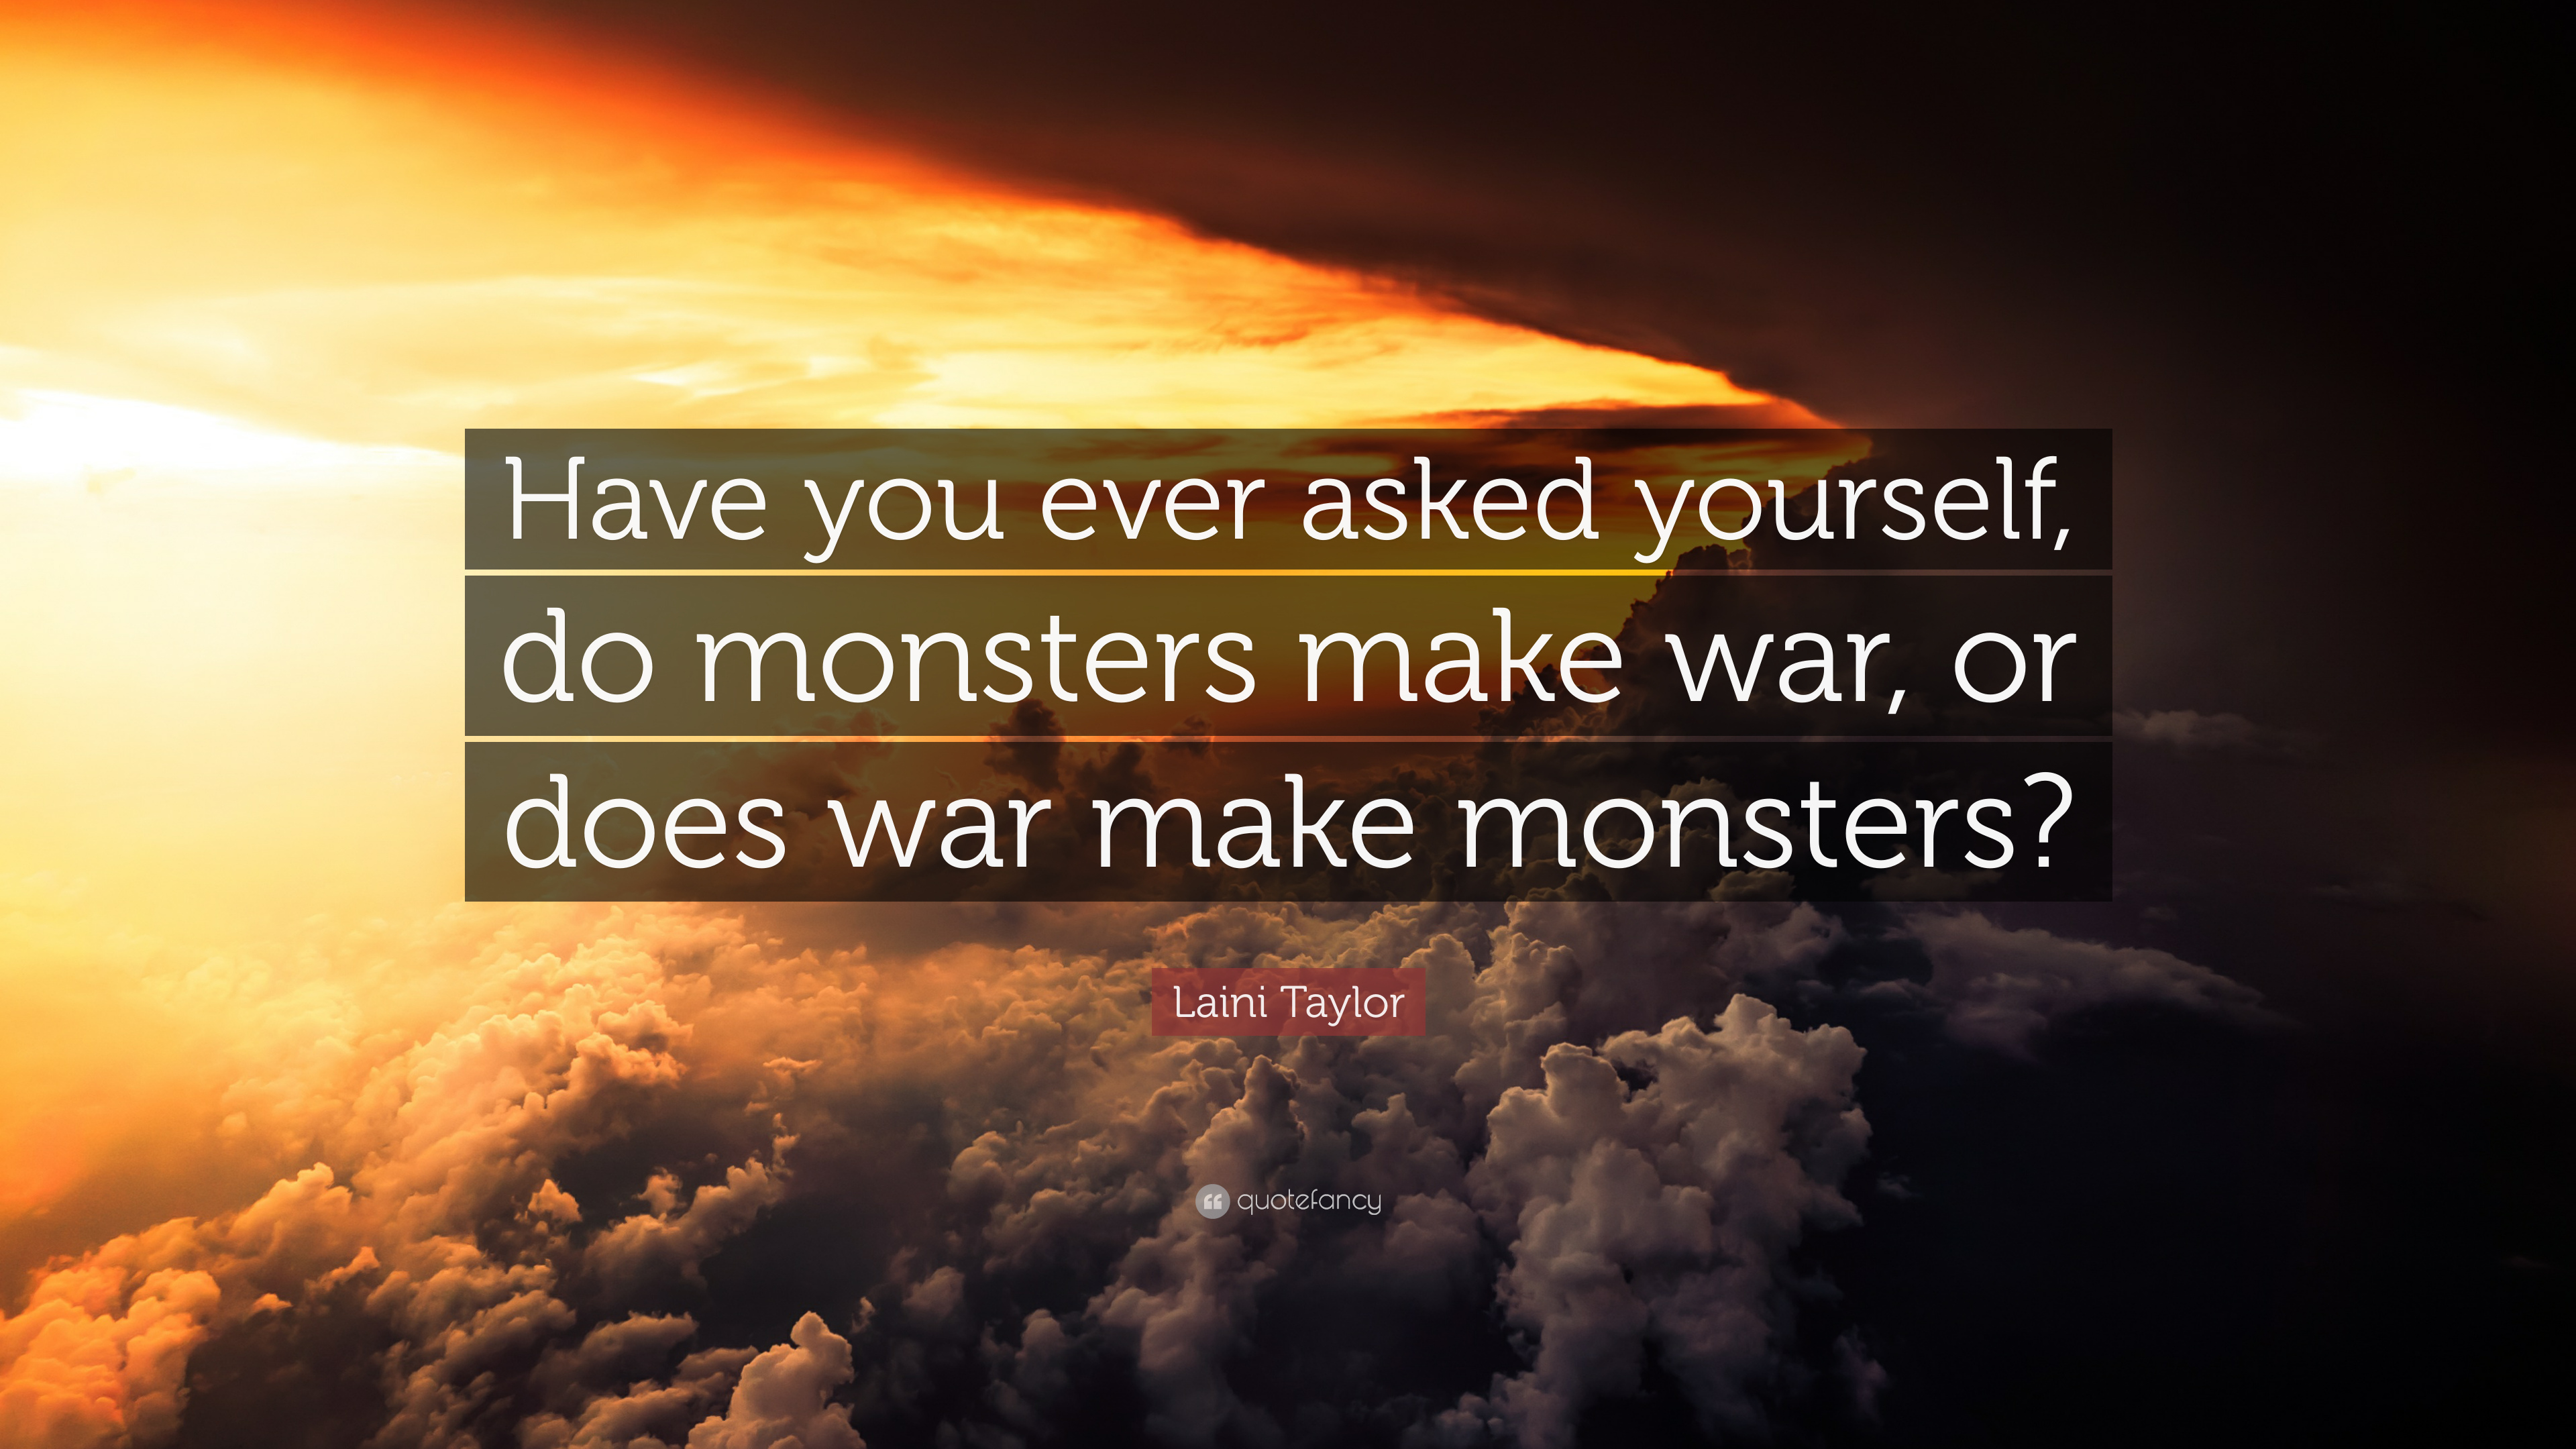 Laini Taylor Quote Have You Ever Asked Yourself Do Monsters